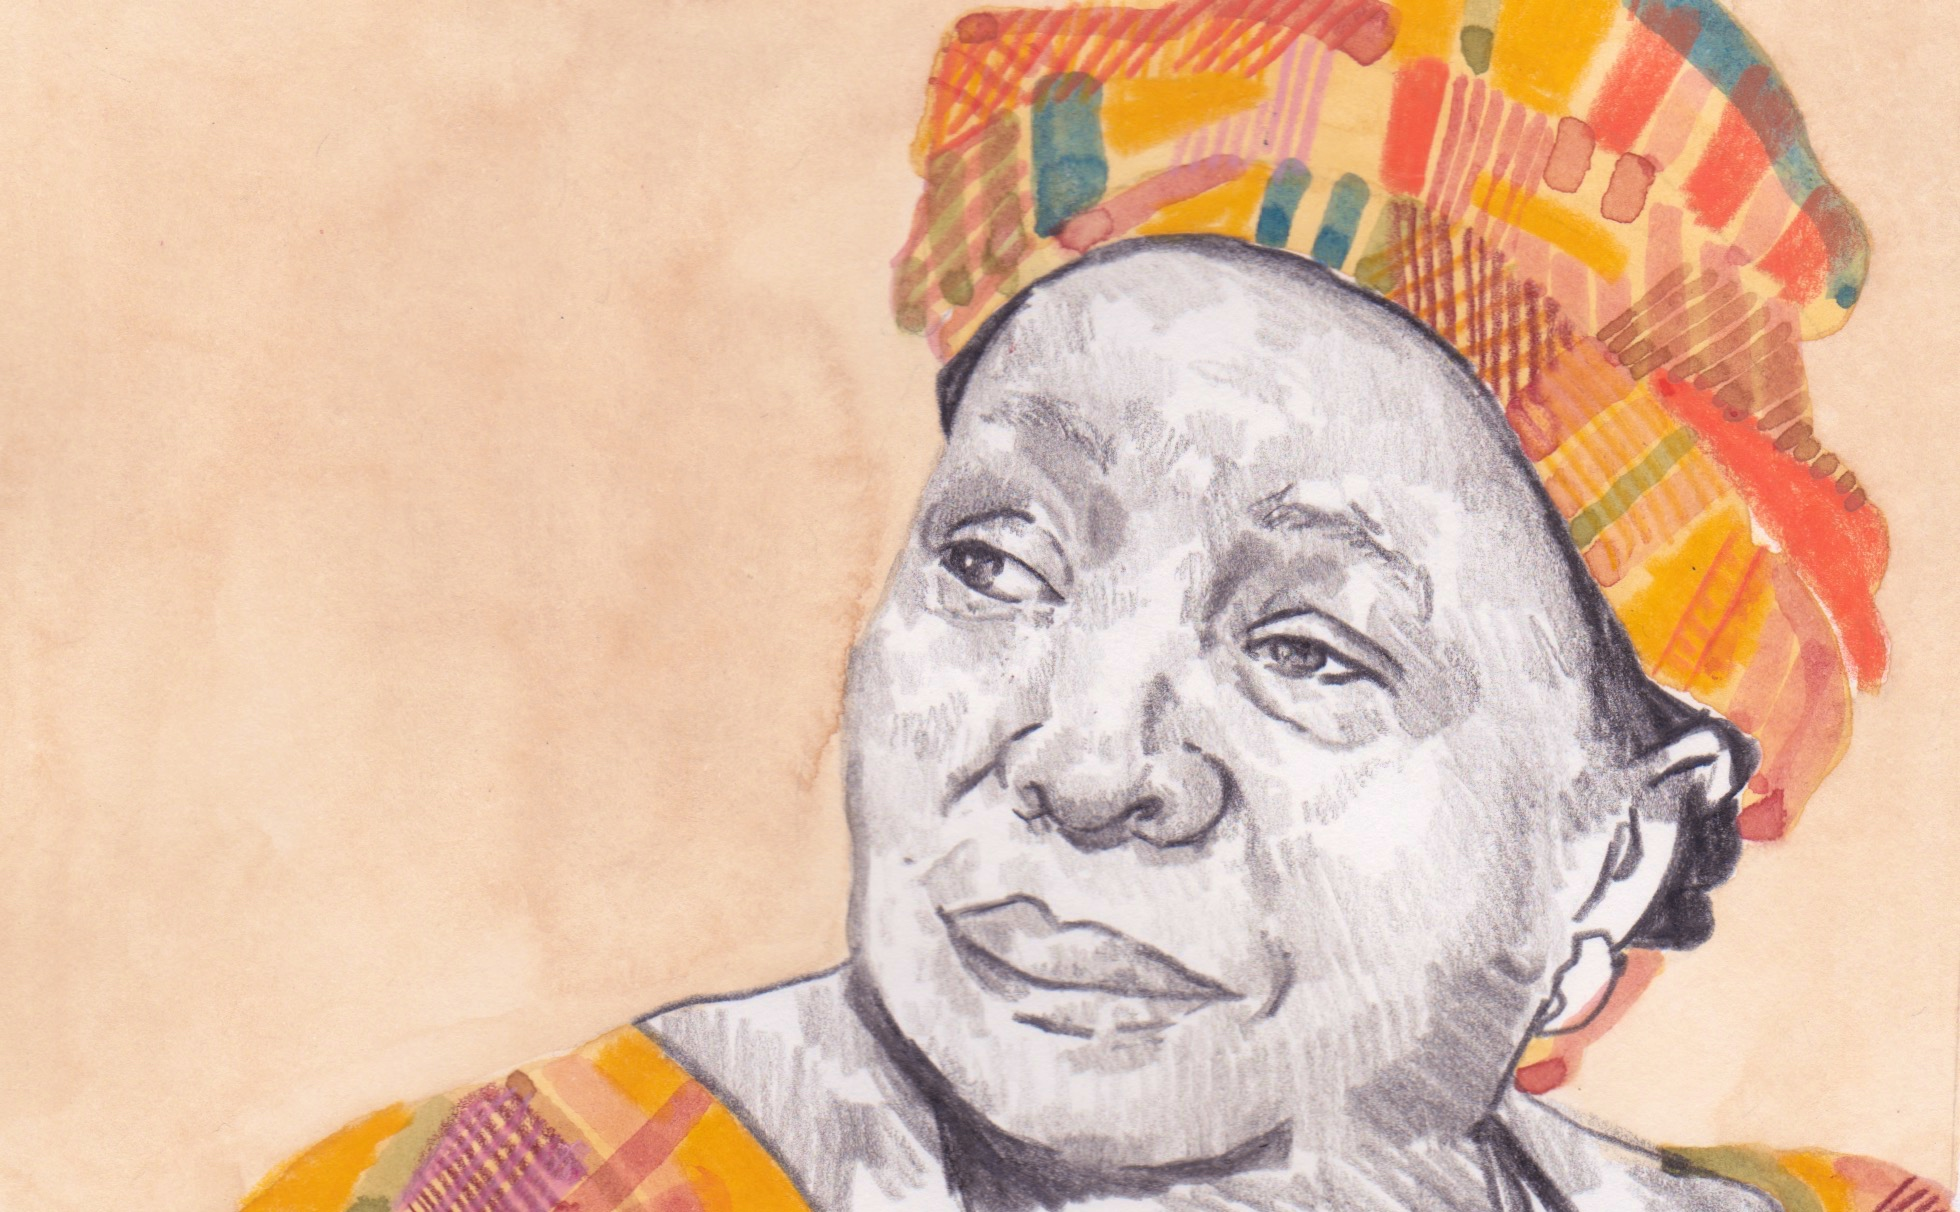 23/05/15 Nkosazana Dlamini- Zuma is the African Union Chair, along with colleagues, is seeking to reposition Africa's quest to transform itself in its 50 year development agenda dubbed 'Africa 2063' by seeking domestic solutions